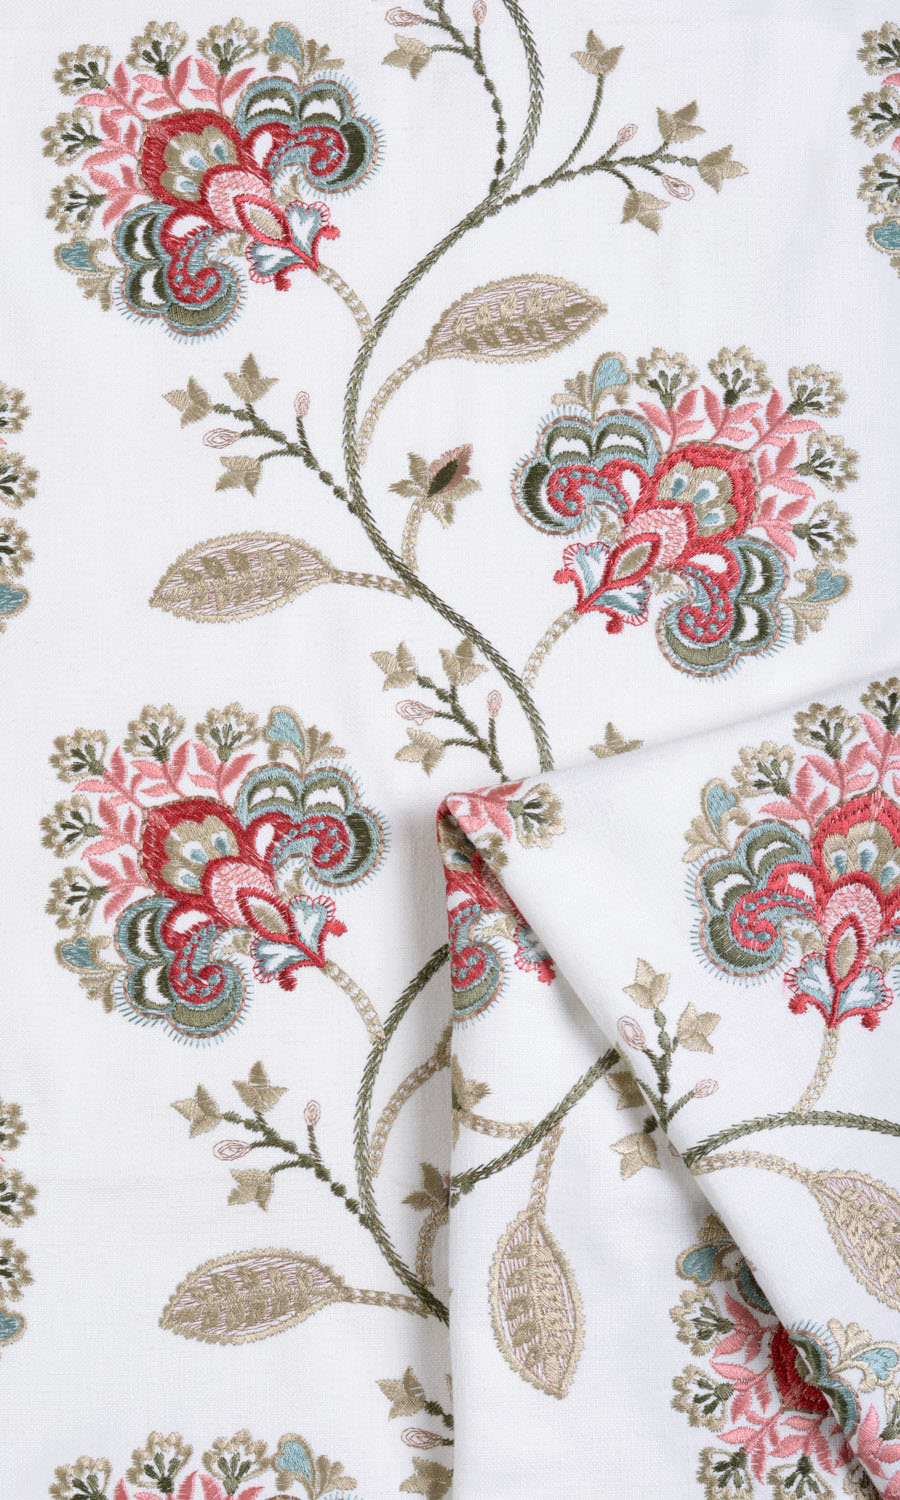 White Floral Patterned Drapes